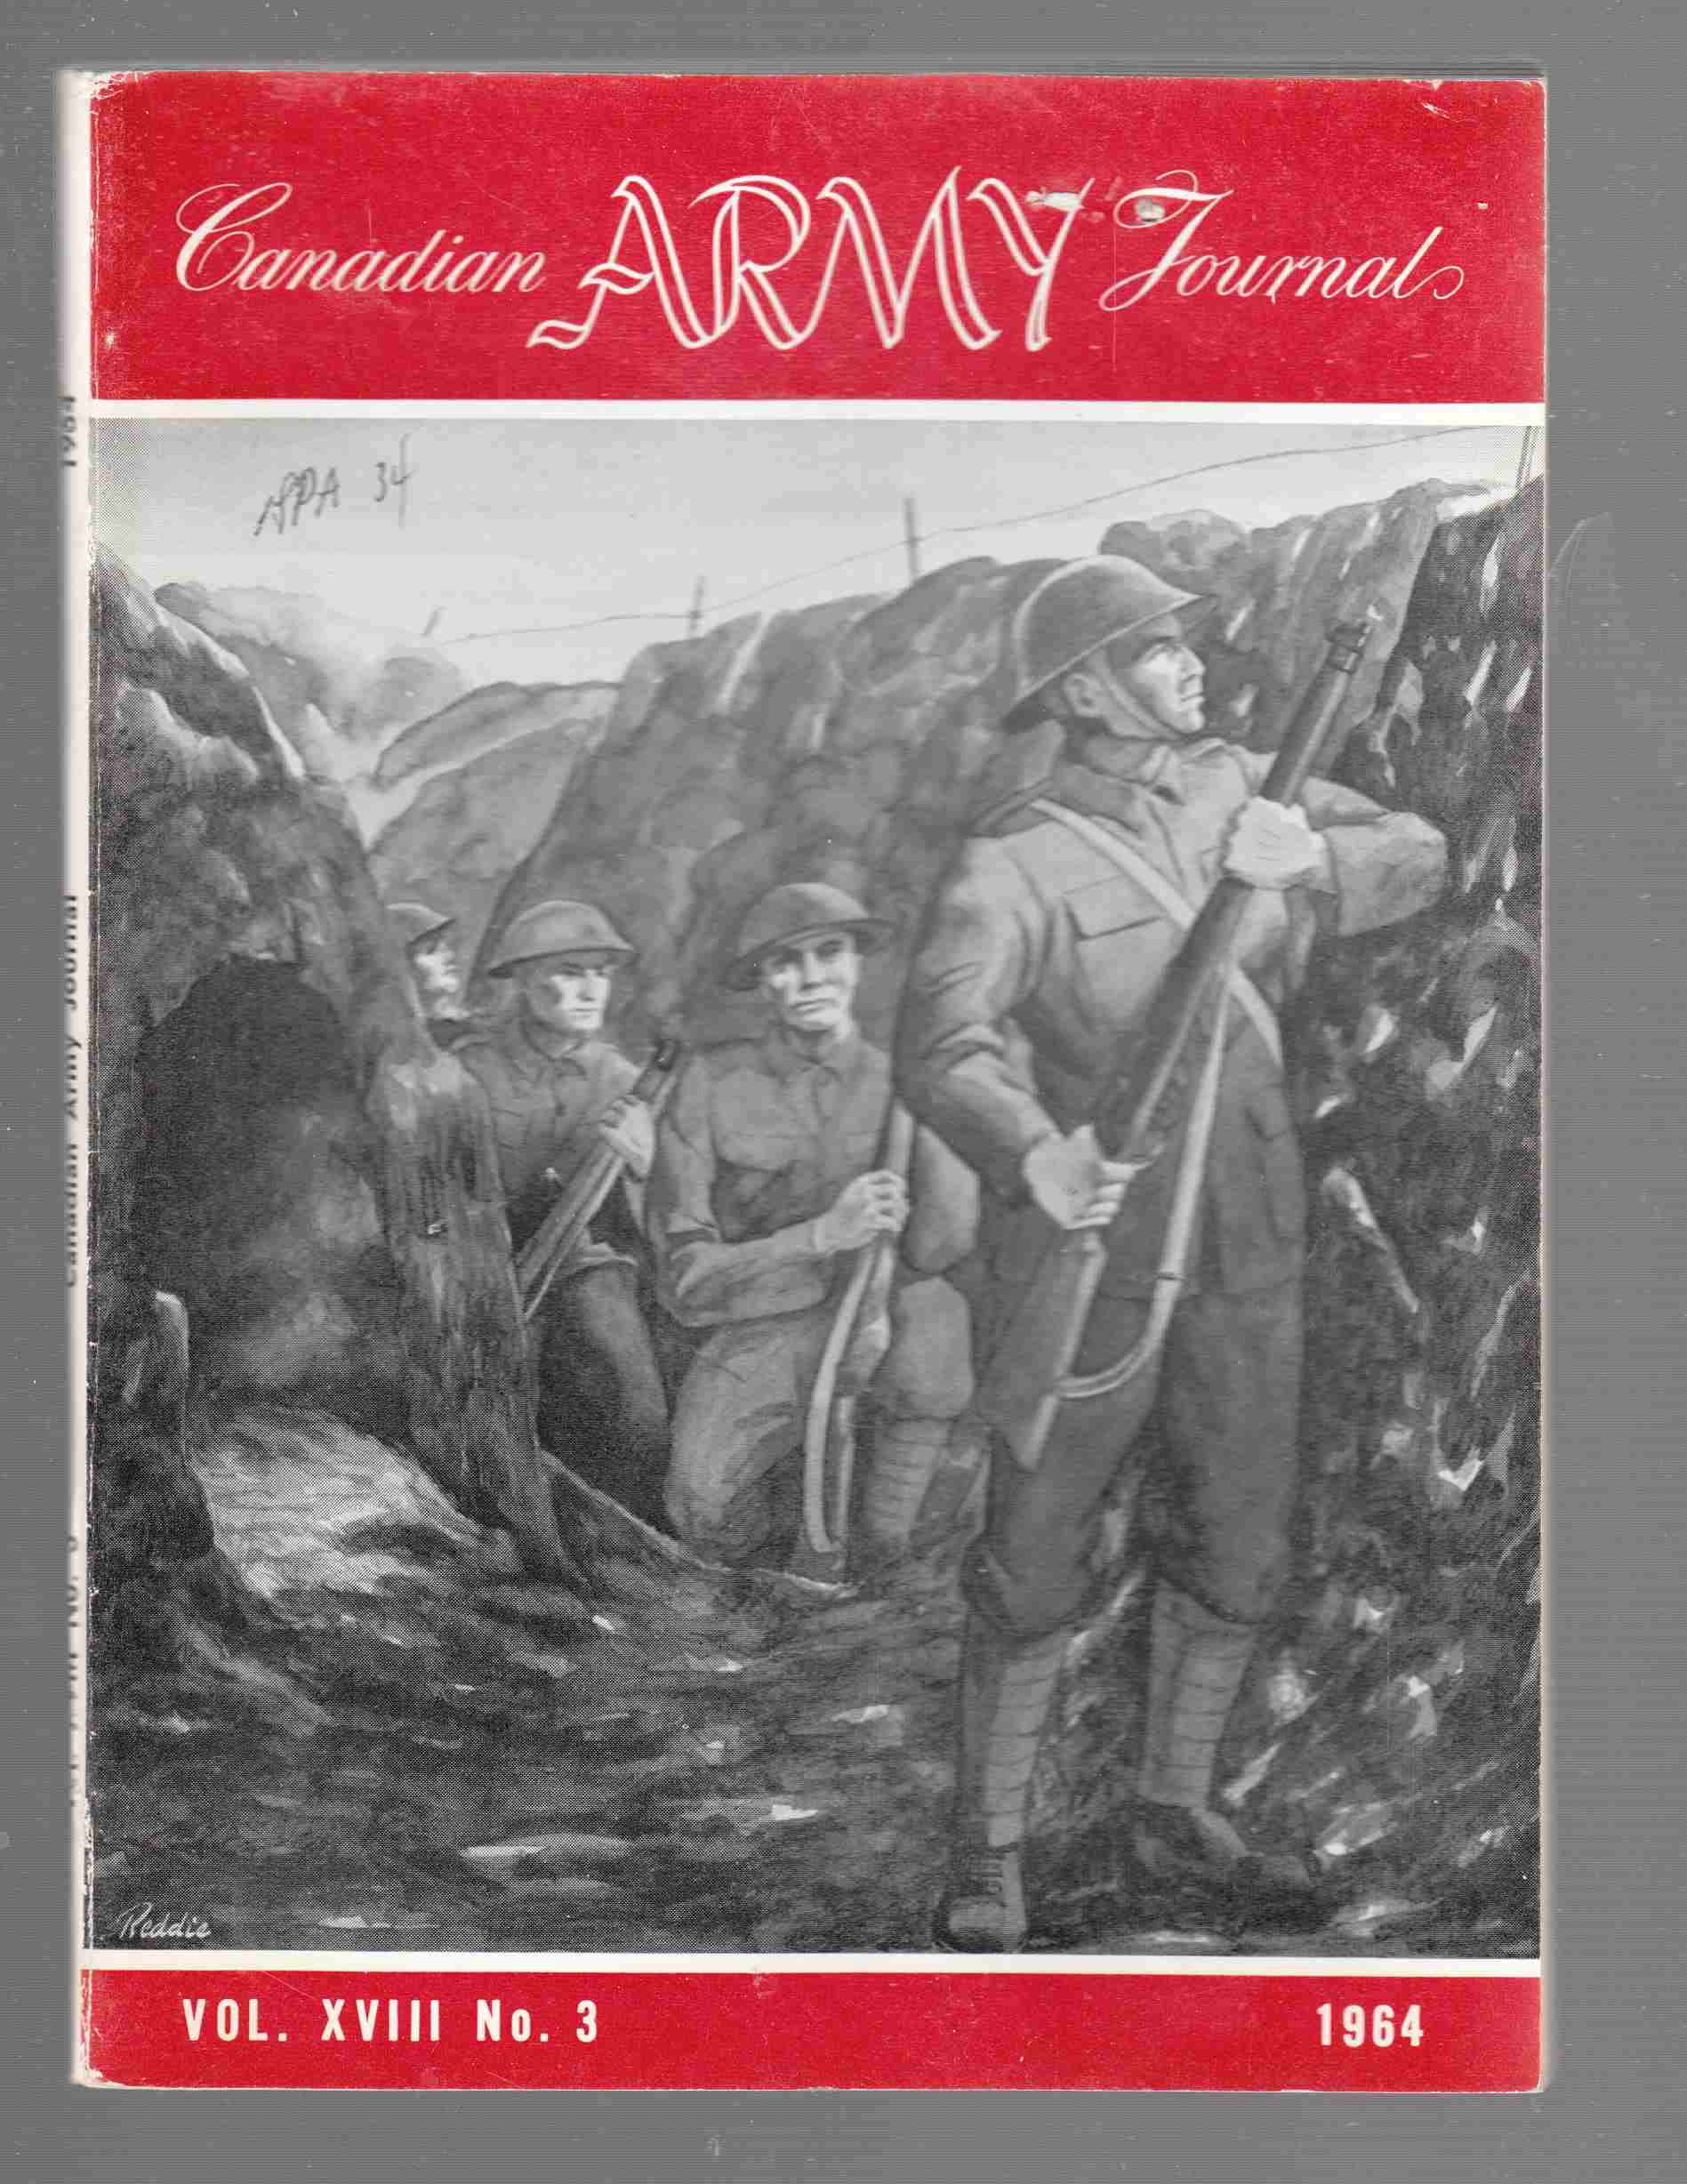 Image for The Canadian Army Journal Vol. XVIII No. 3 1964